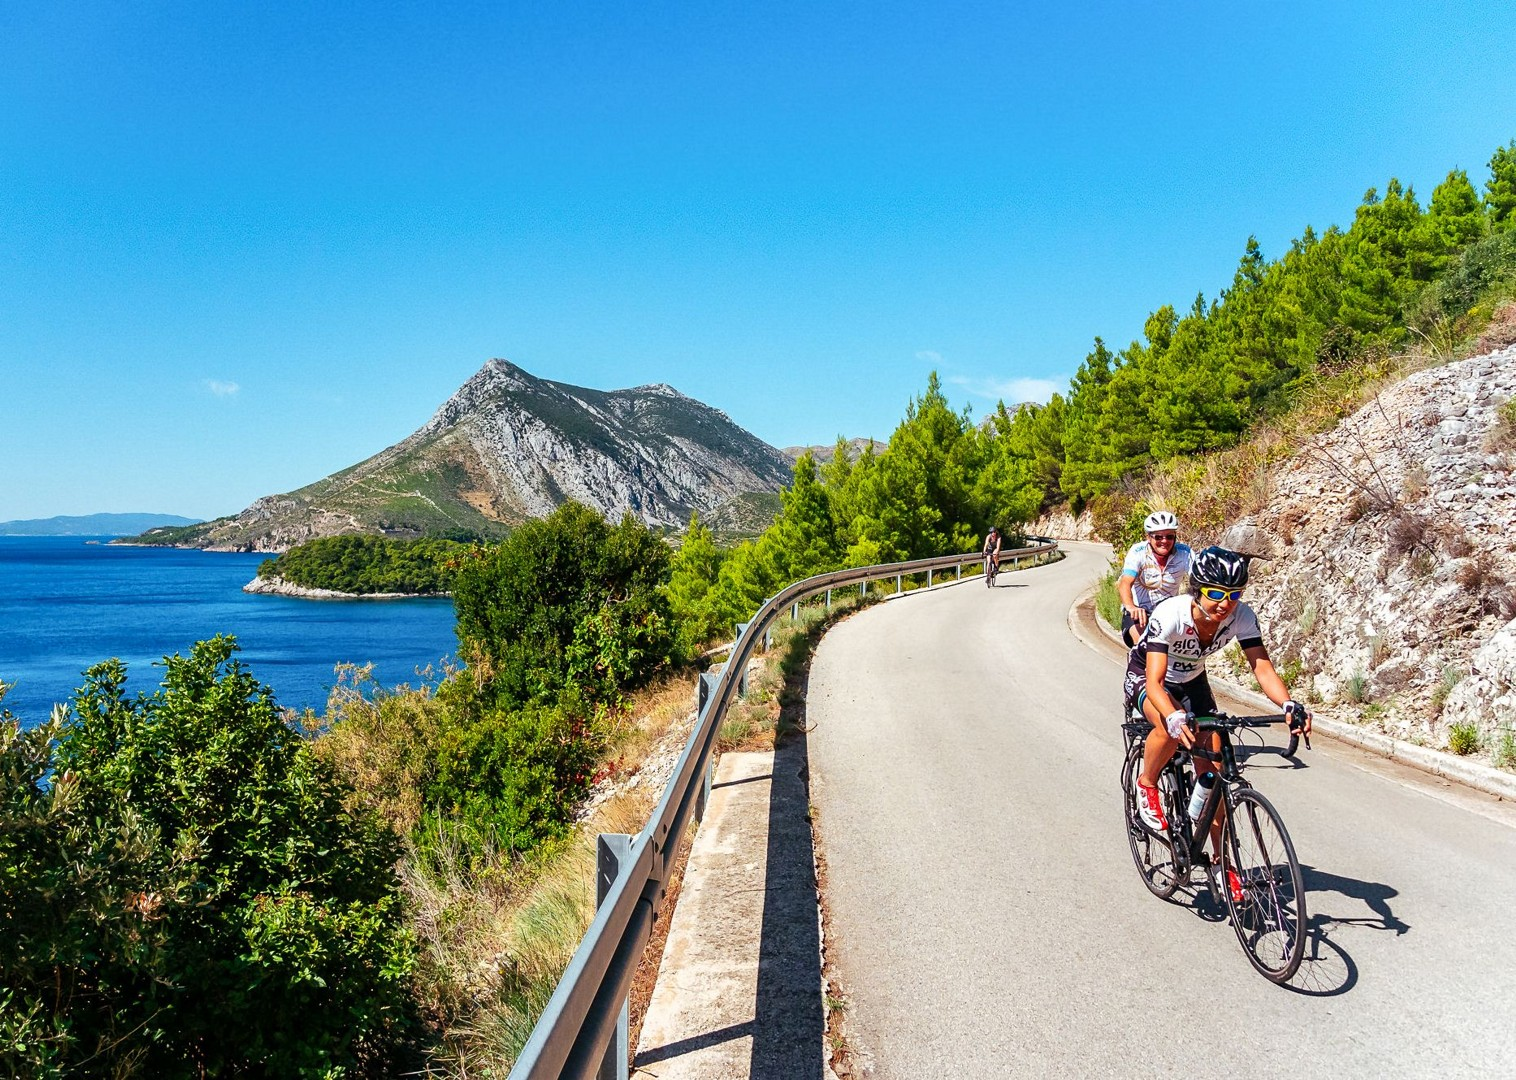 road-cycling-holiday-in-croatia-with-saddle-skedaddle.jpg - Croatia - Islands of the Dalmatian Coast - Guided Road Cycling Holiday - Road Cycling